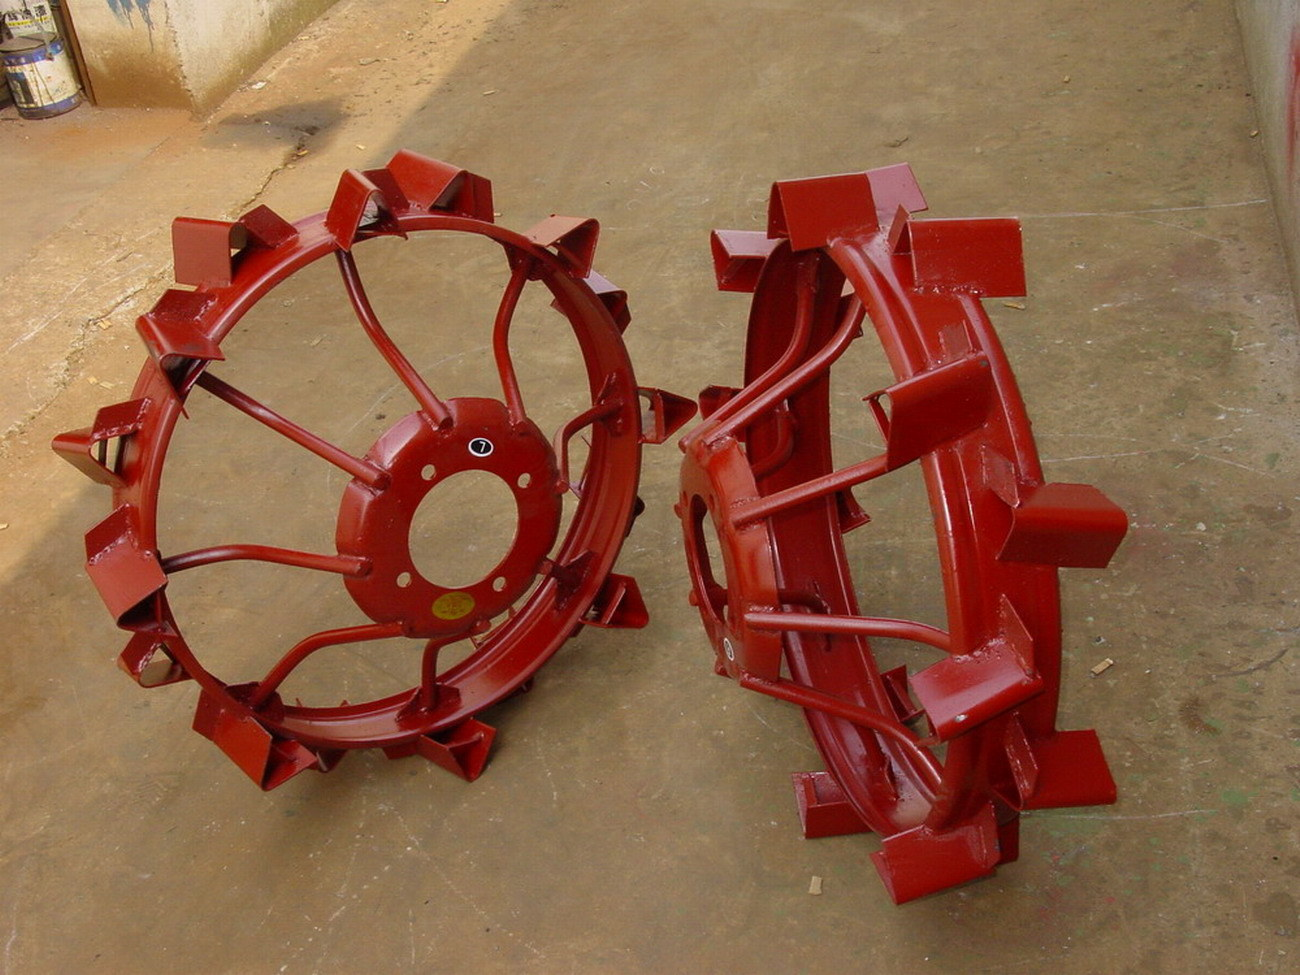 Steel Wheel / Iron Wheel